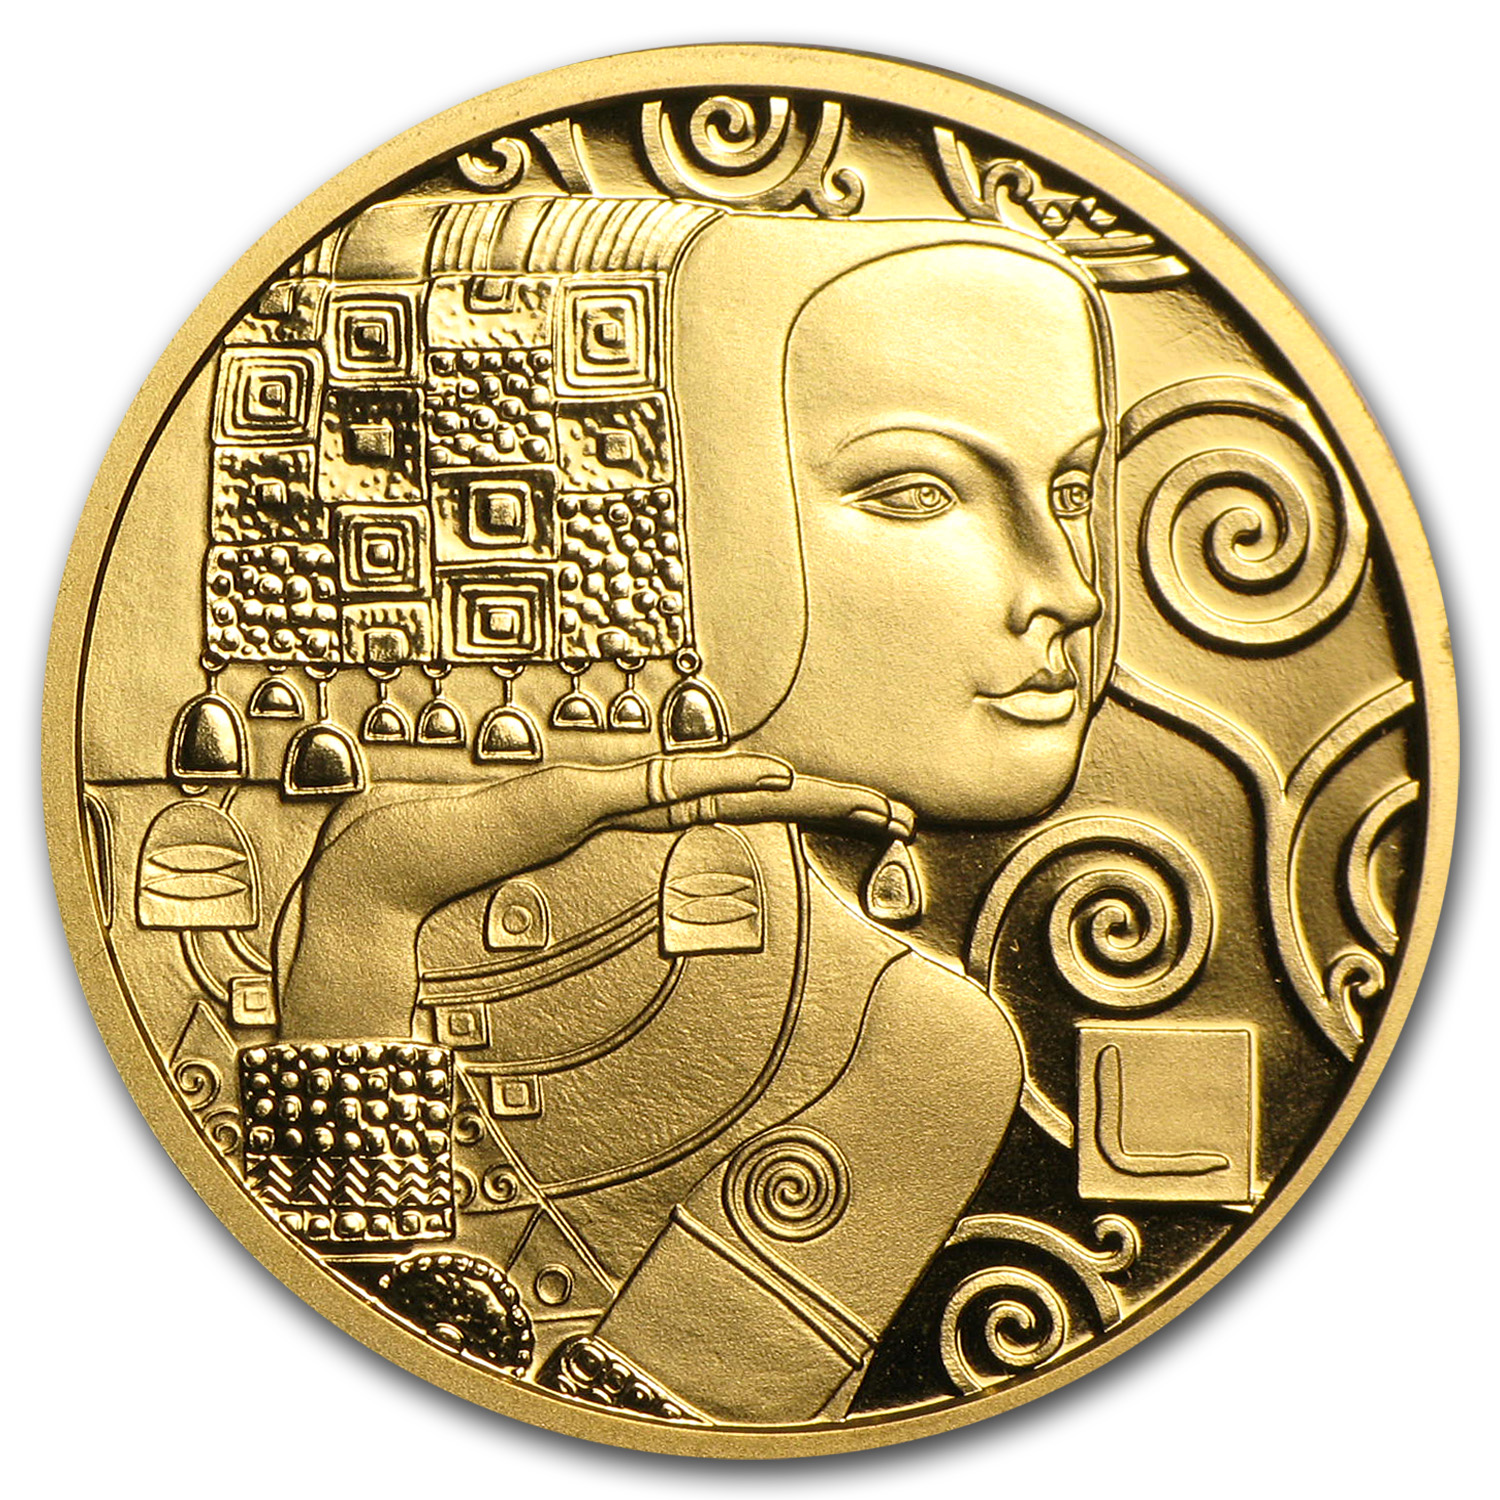 2013 Austria Gold 50 Euro Die Erwartung Proof (The Expectation)